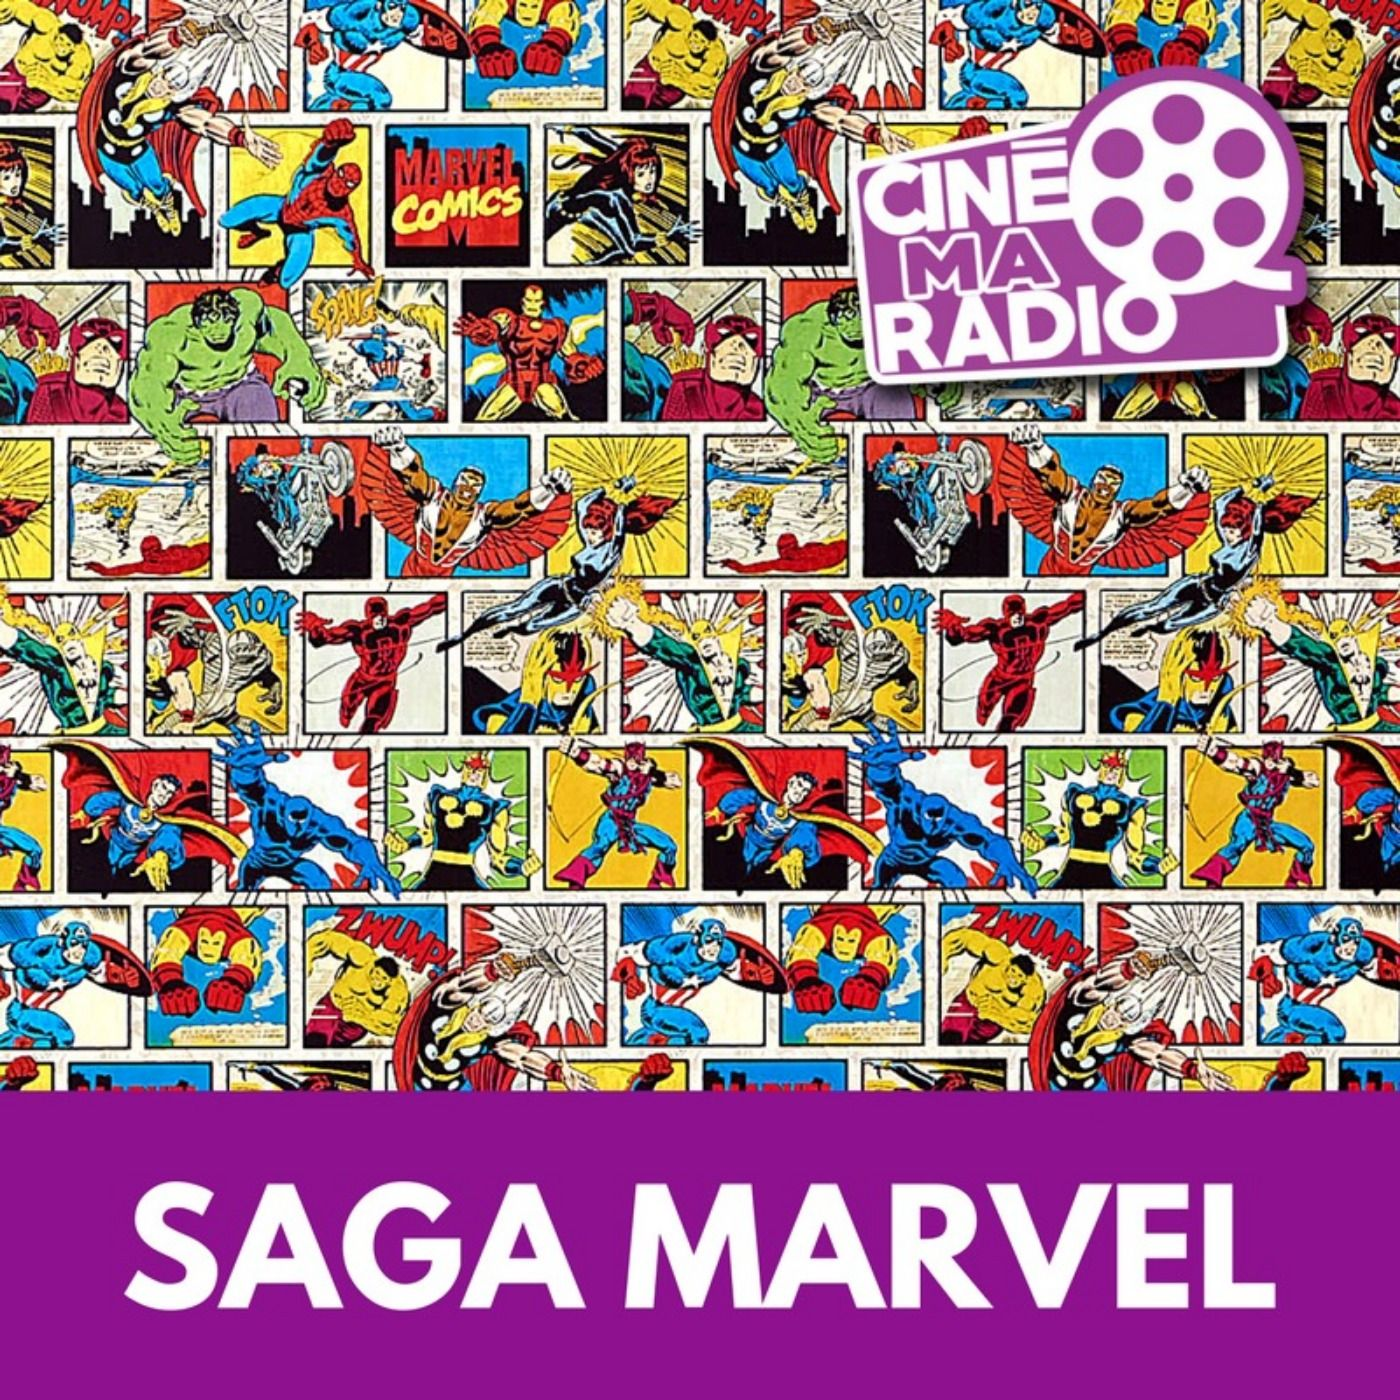 SAGA MARVEL | Hommage à Stan Lee